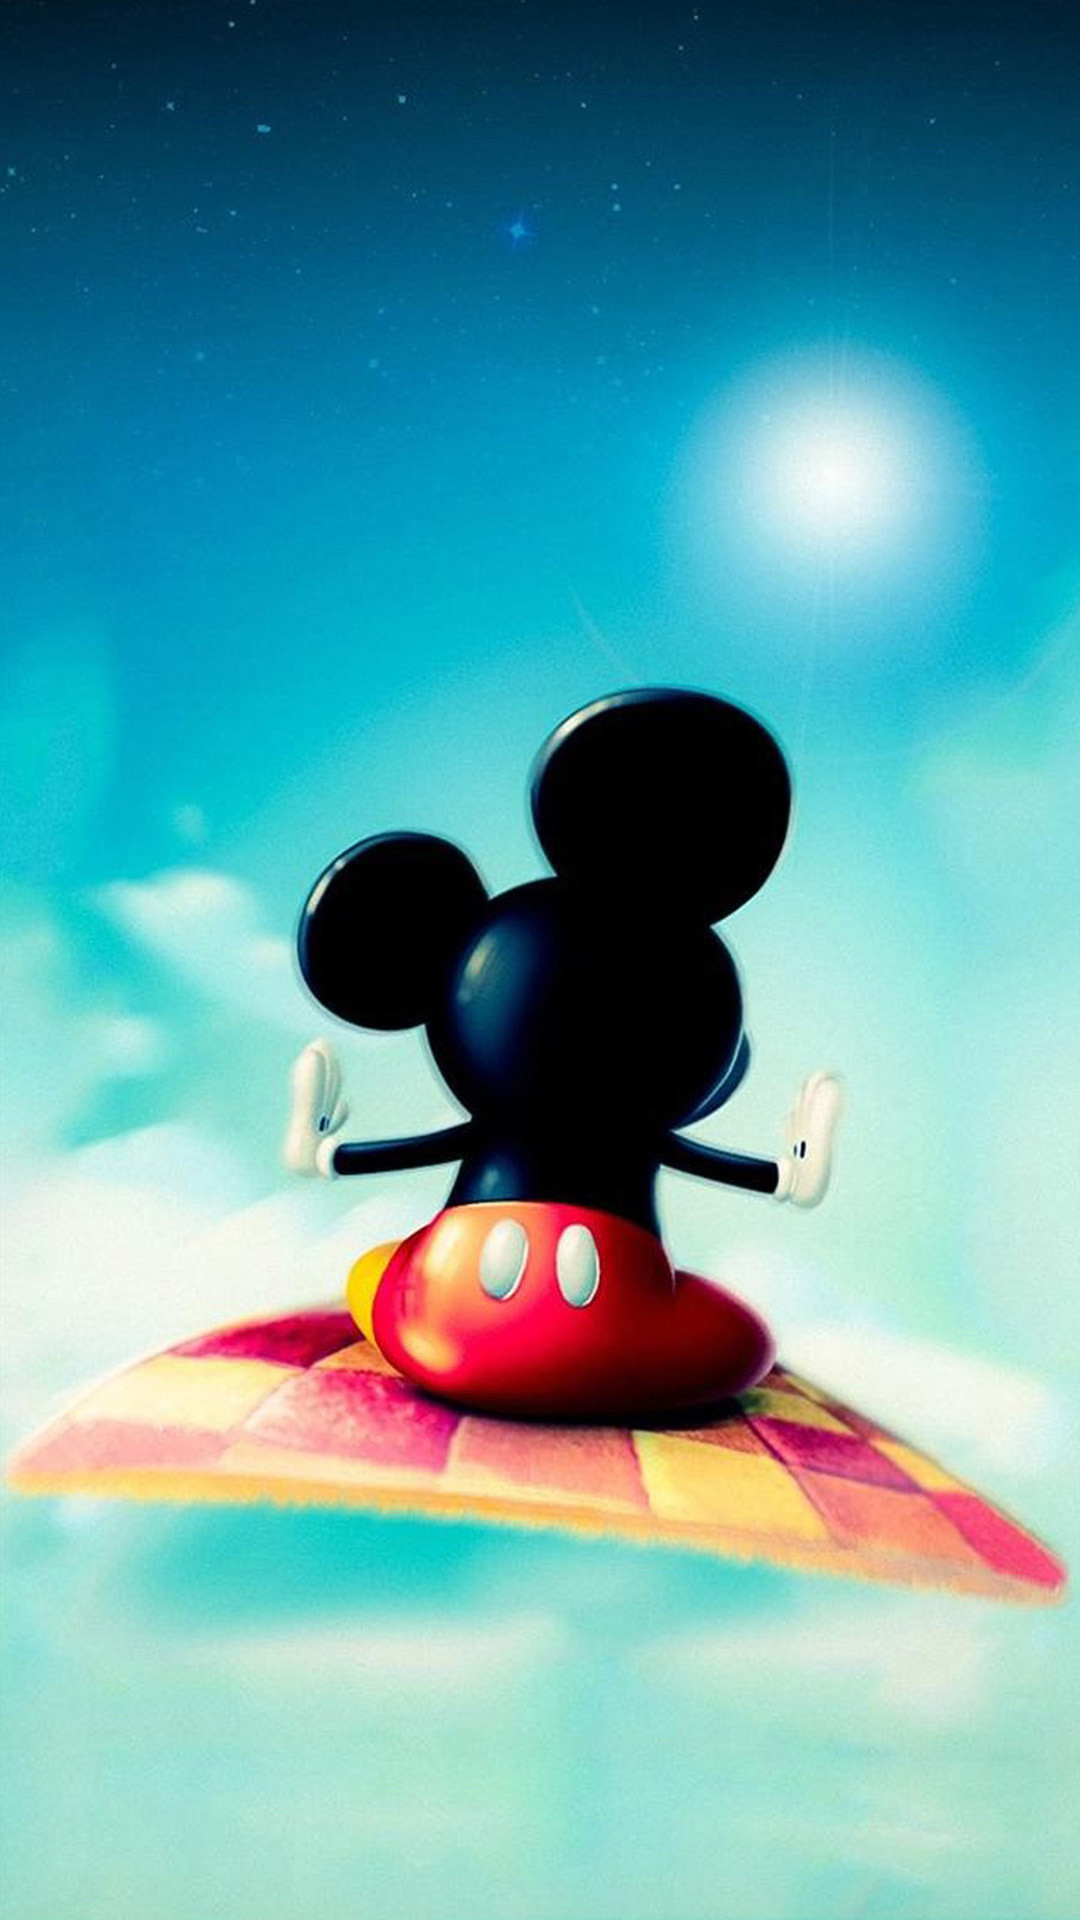 Cute Disney Wallpapers for iPhone